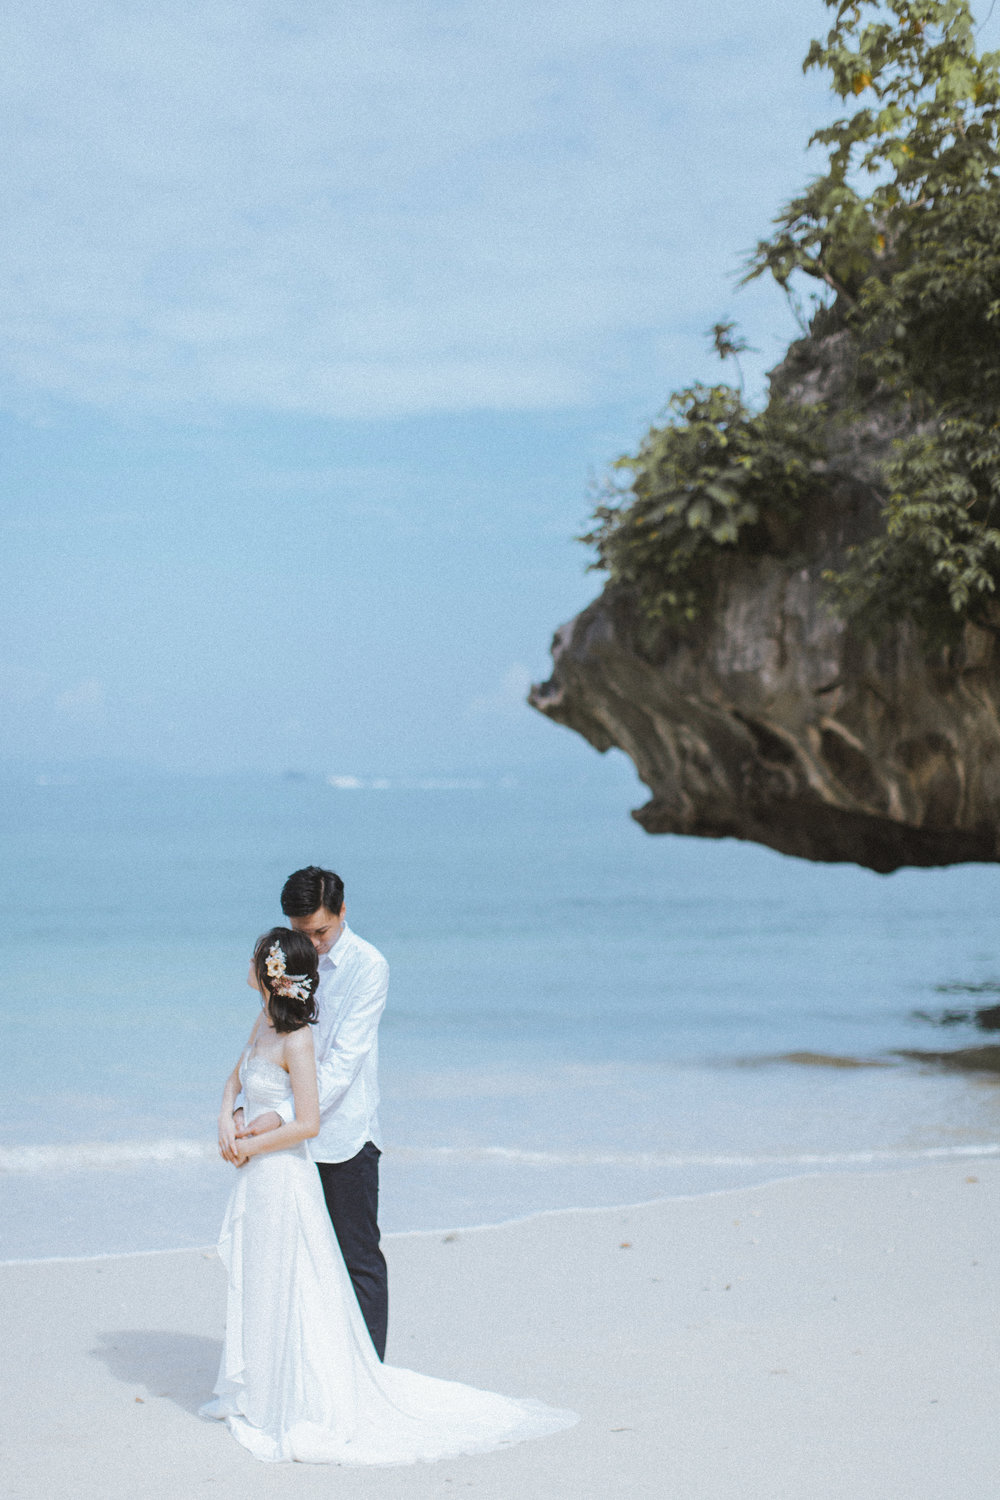 Prewedding Photography Thailand